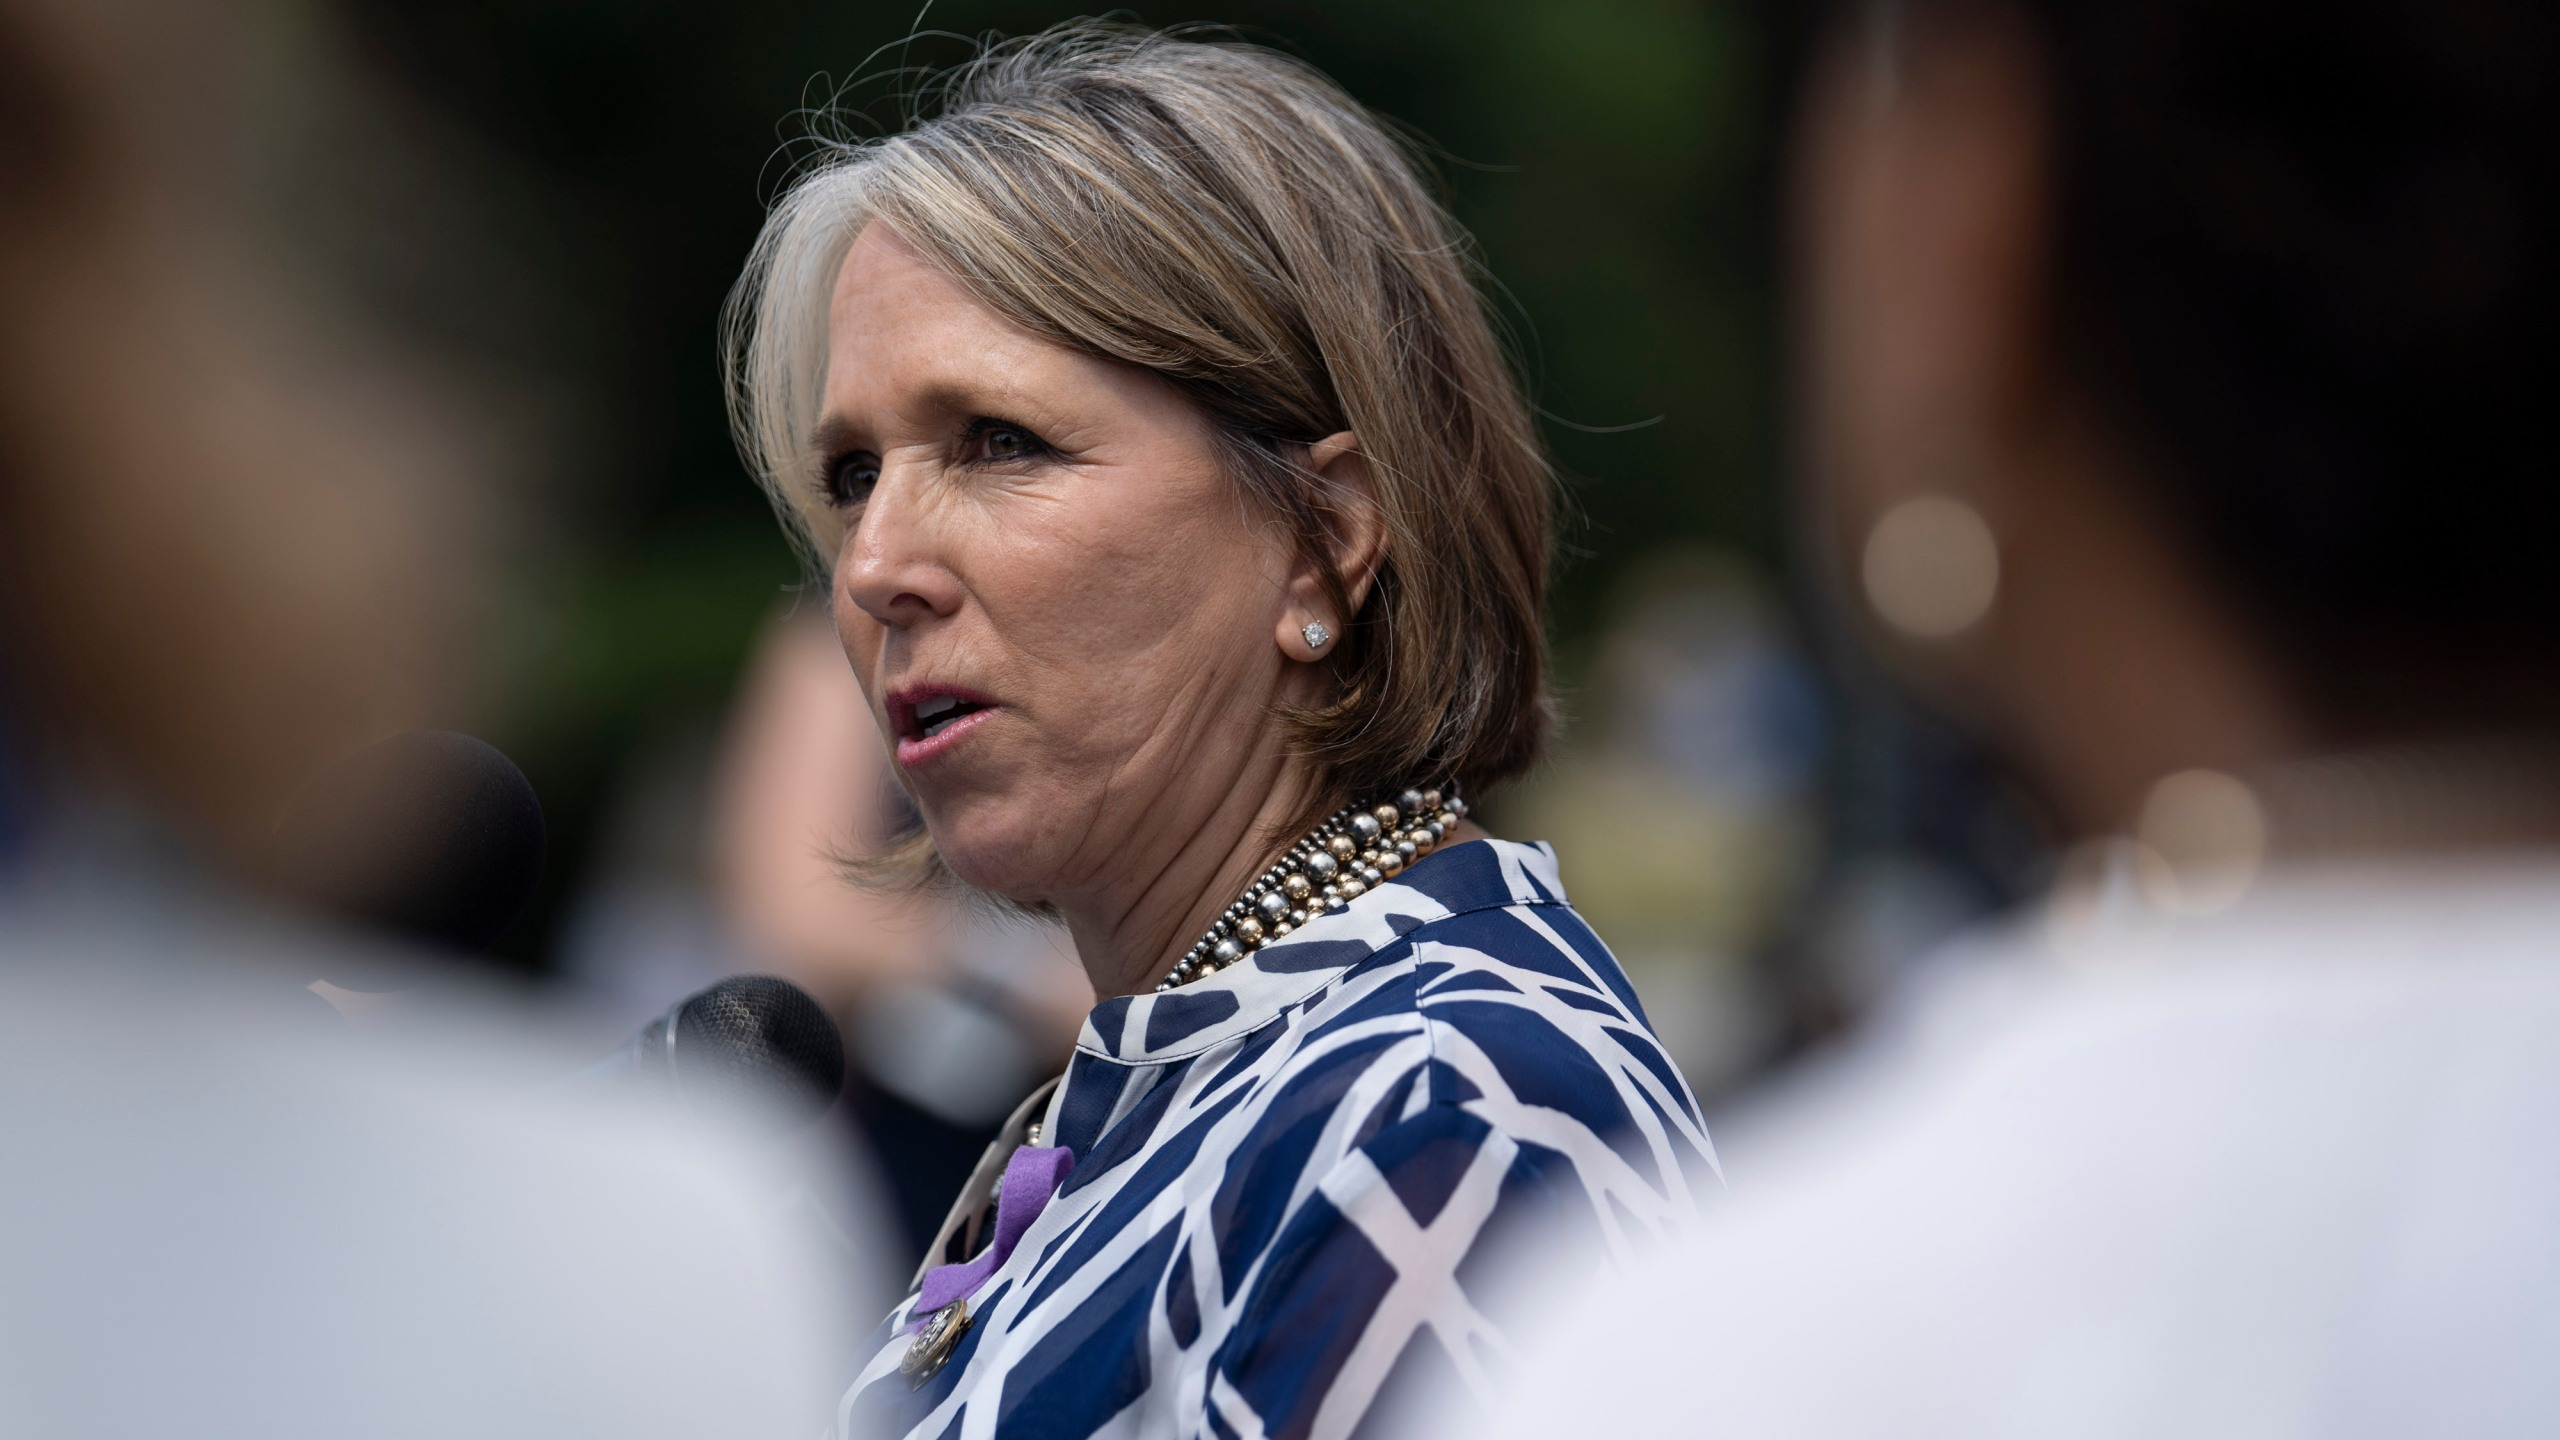 Rep. Michelle Lujan Grisham speaks during a news conference on immigration, outside the U.S. Capitol on June 13, 2018, in Washington, D.C. (Credit: Toya Sarno Jordan/Getty Images)